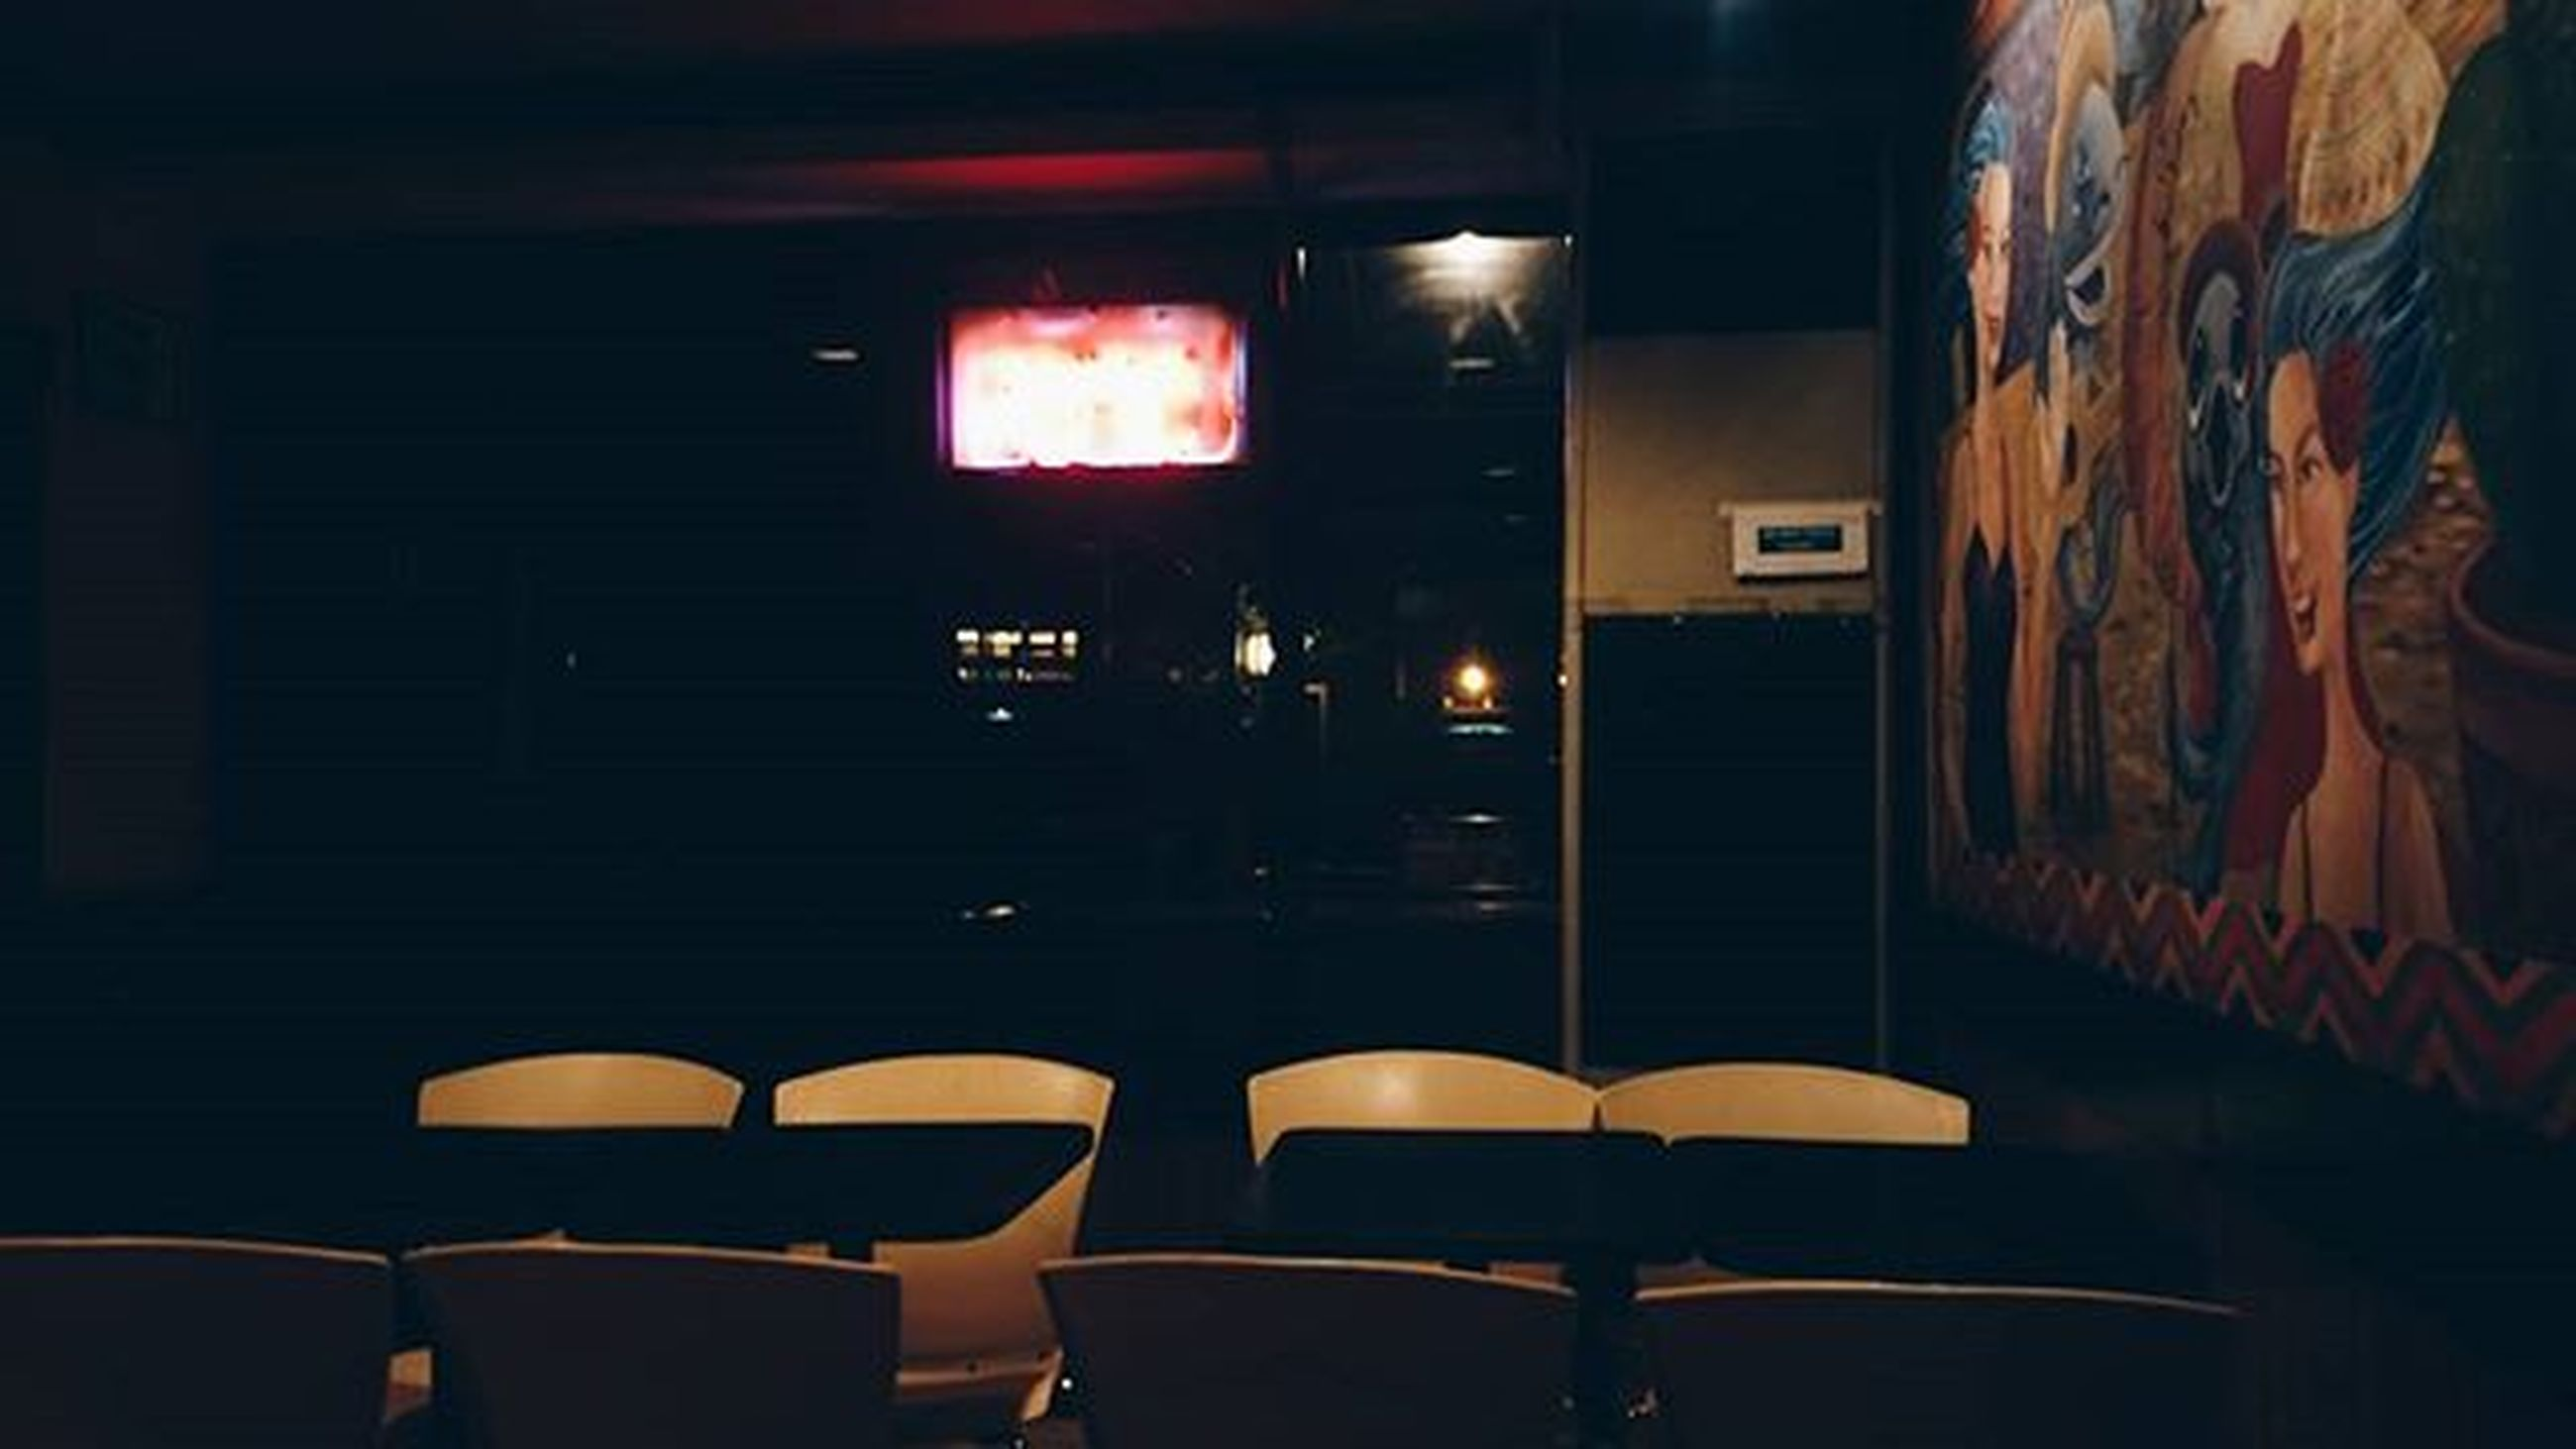 indoors, illuminated, chair, built structure, window, absence, architecture, lighting equipment, empty, wall - building feature, wall, night, in a row, dark, no people, interior, room, store, restaurant, seat